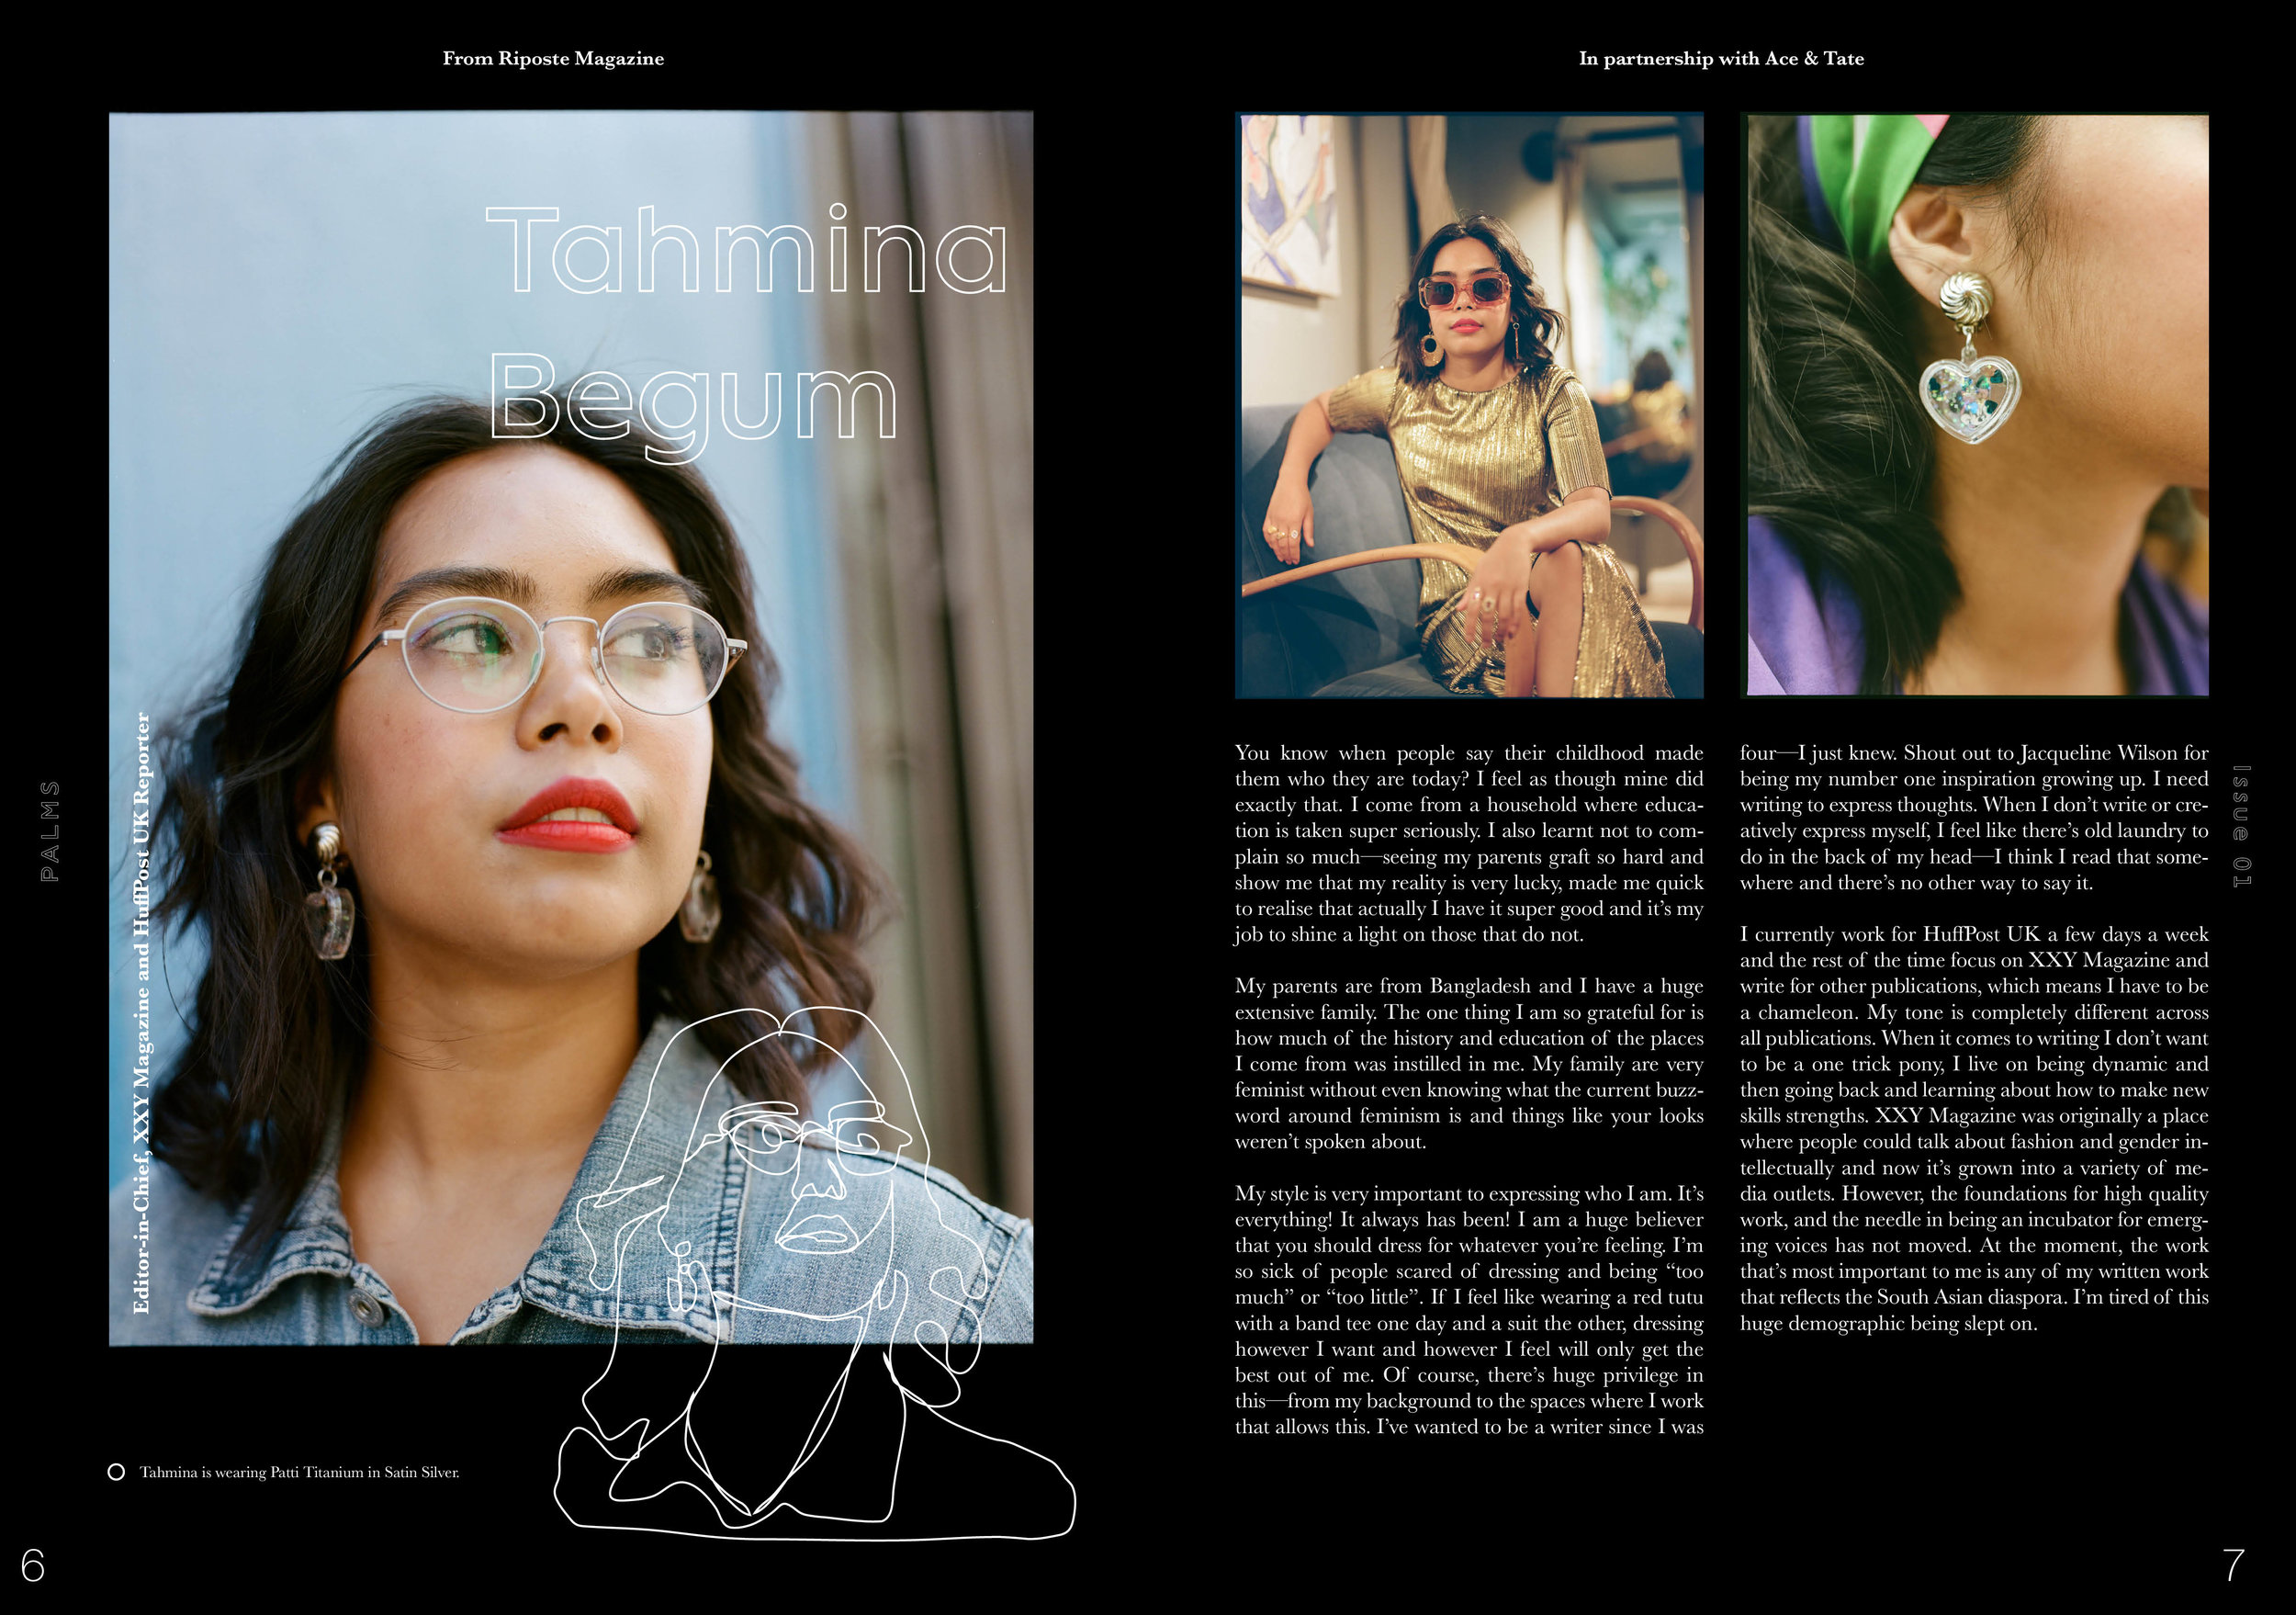 Lay It Out - A showcase of page layouts based on intriguing people, places, and artworks. Content is both original words and photographs mixed with sourced materials from existing publications.